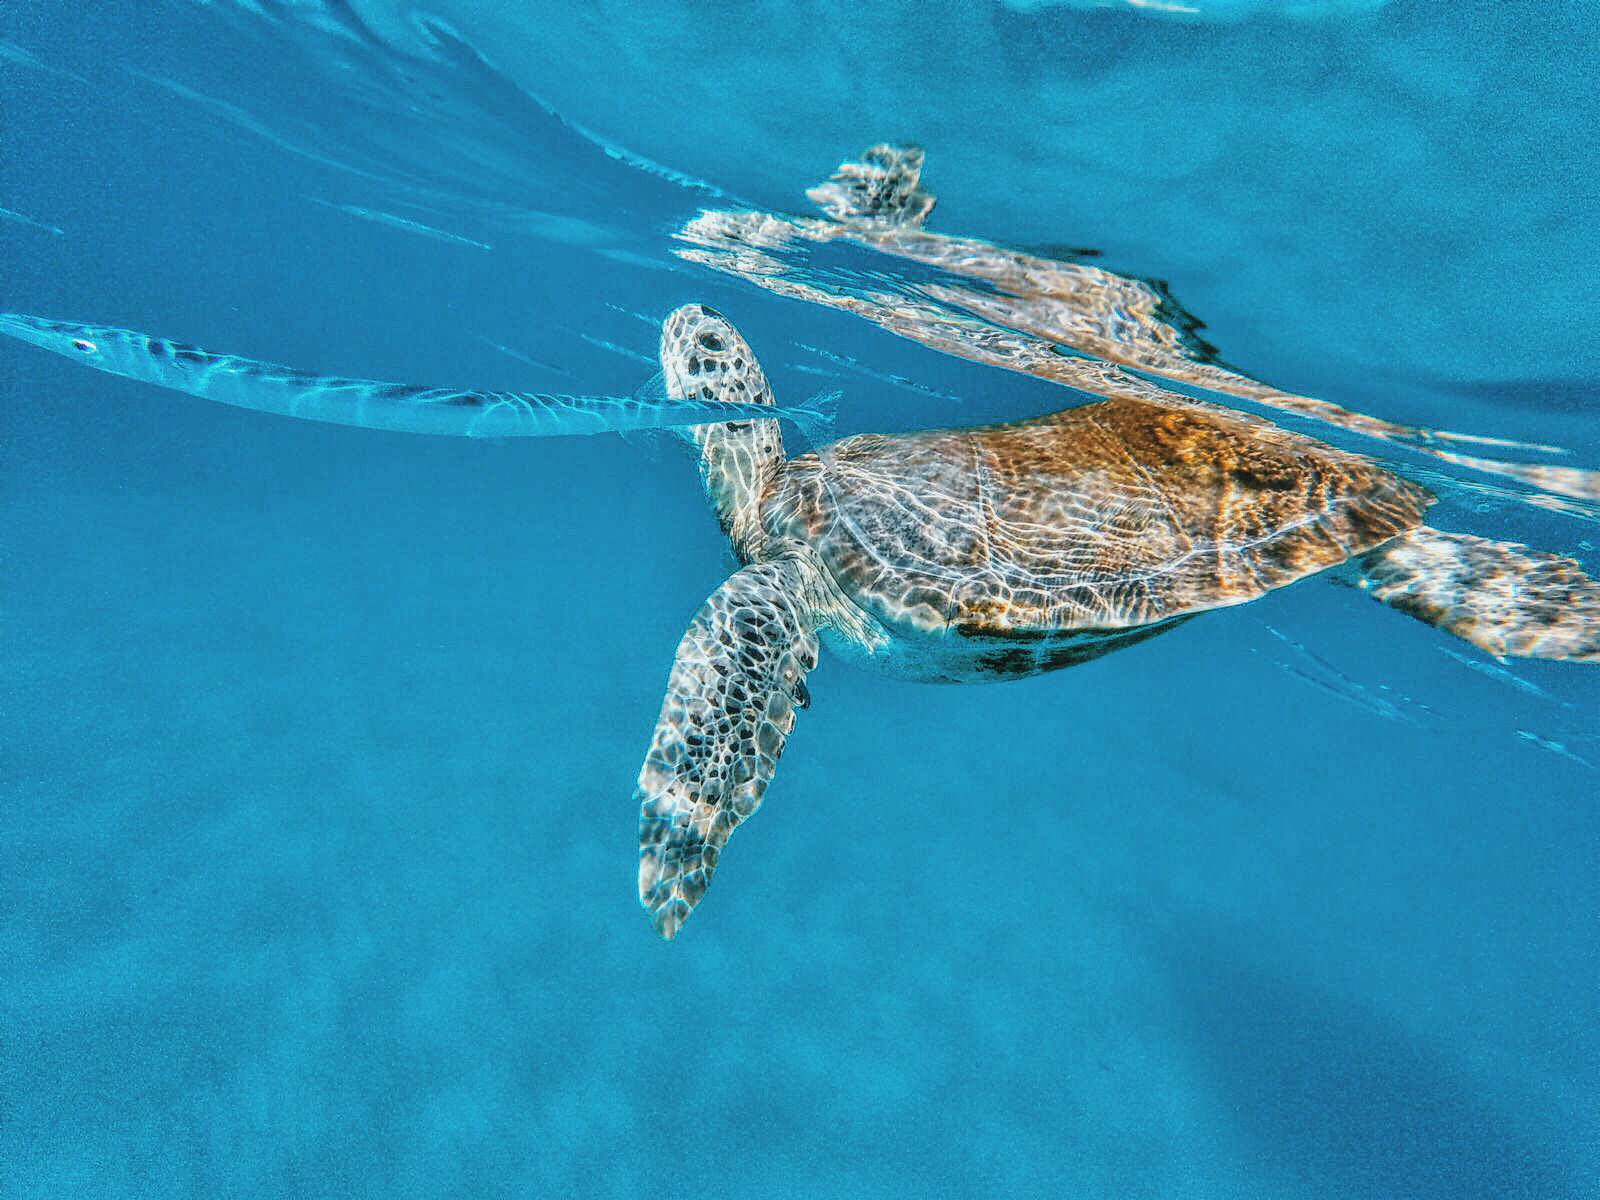 Swimming With Turtles in The Pristine Caribbean Sea - Hello From Barbados! (4)